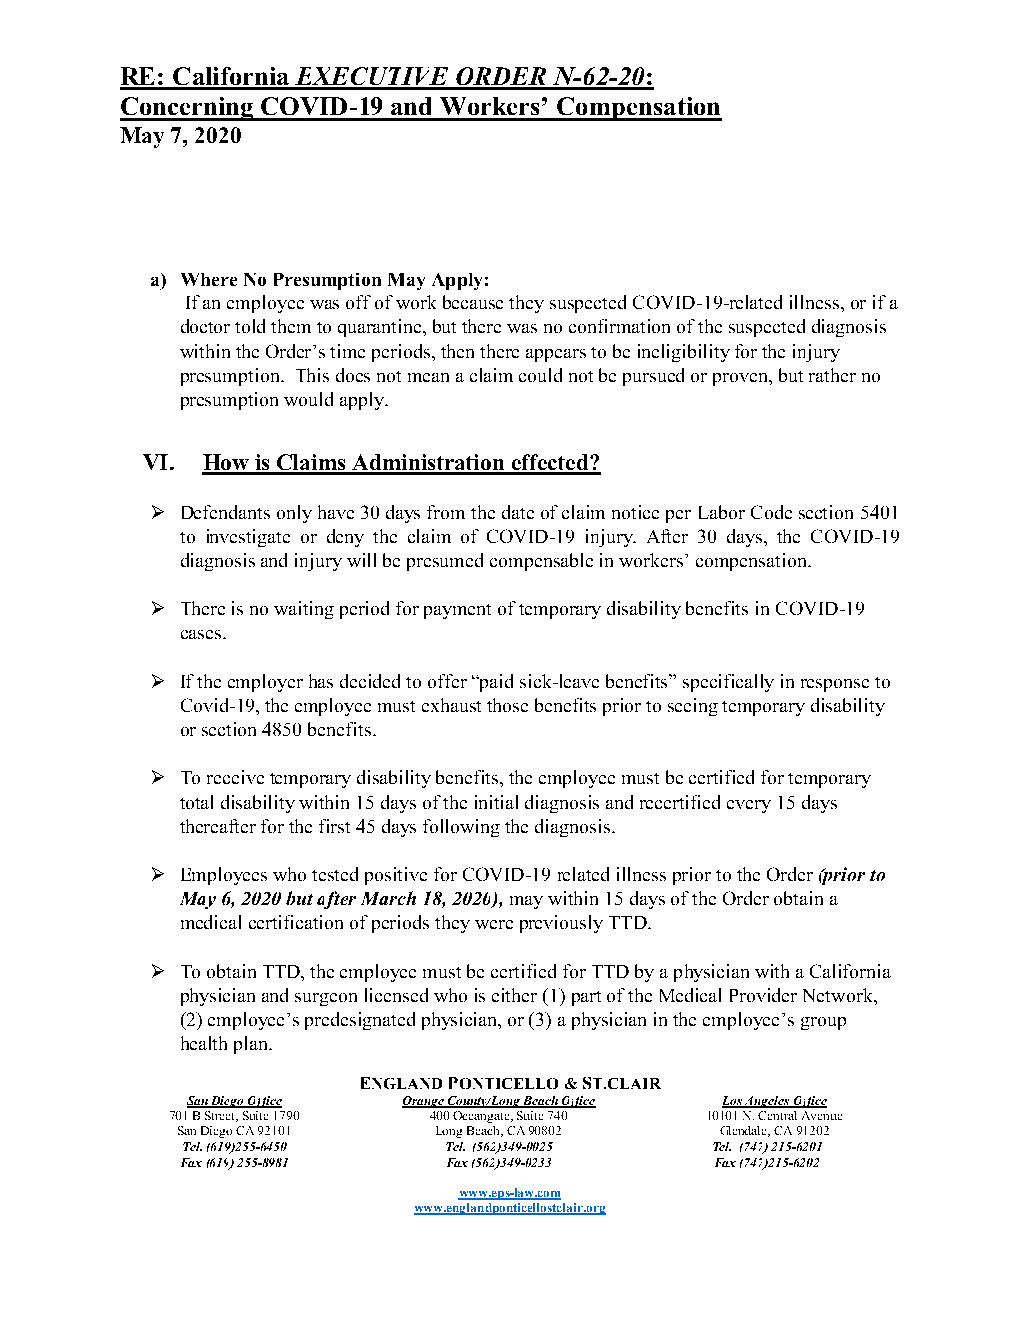 EPS Re Covid 19 Executive Order_Page4